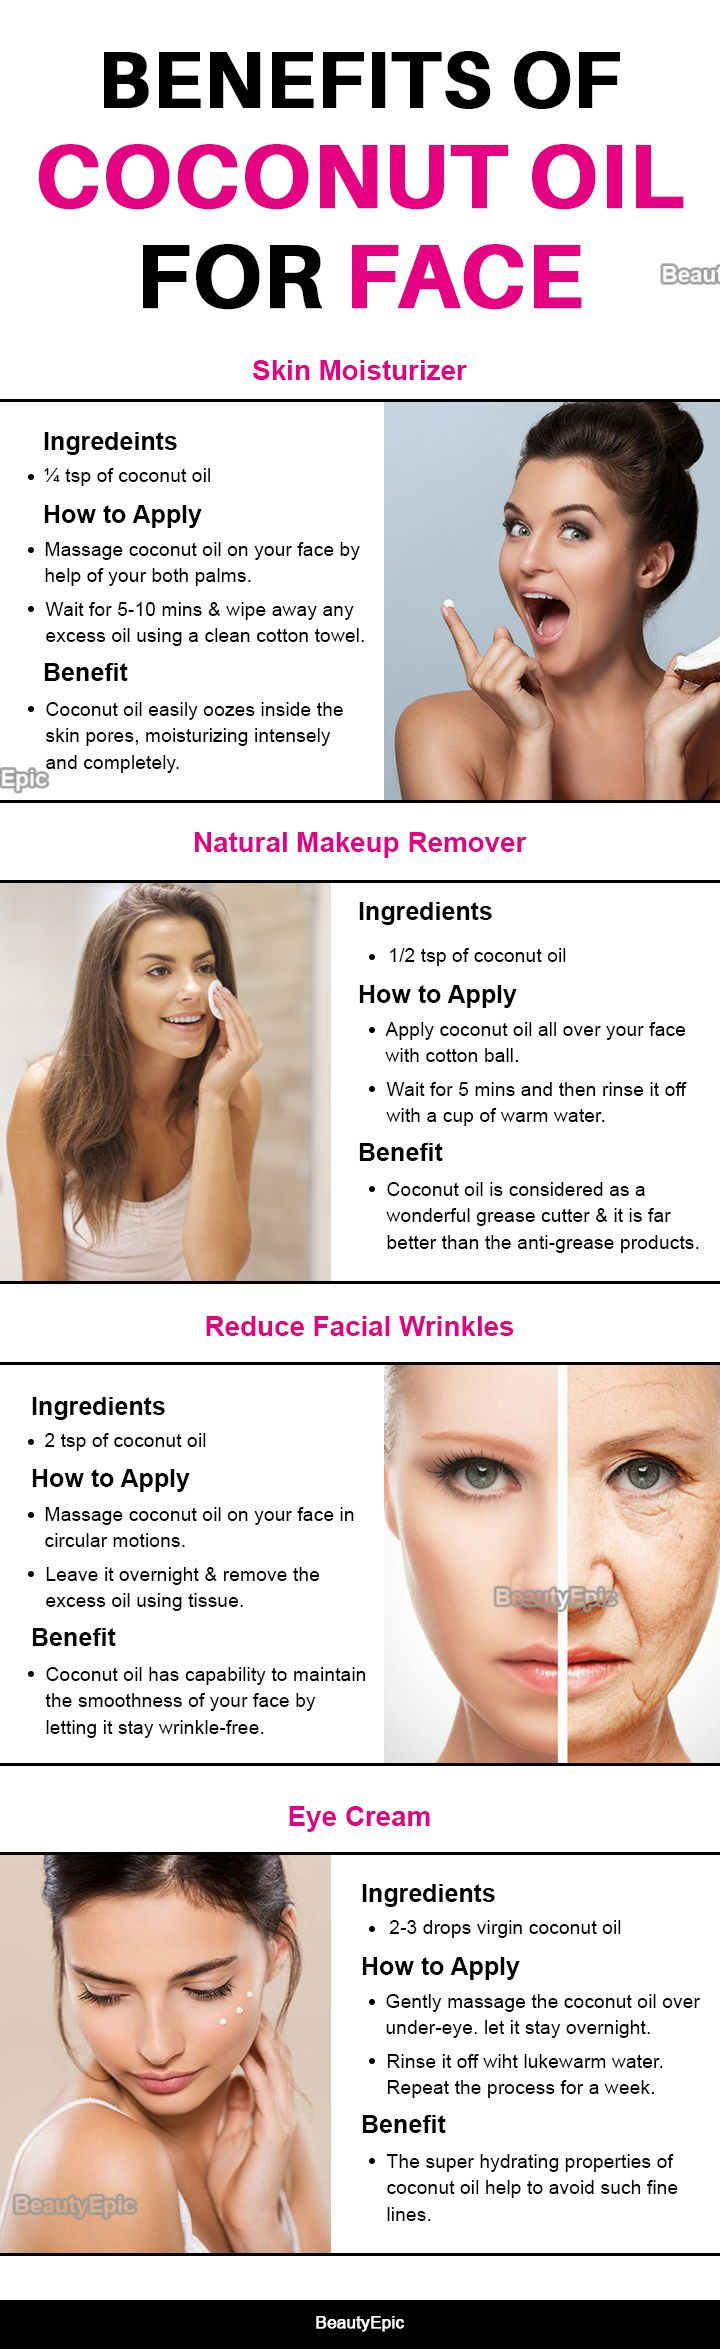 How To Use Coconut Oil For Face Benefits And Uses Coconut Oil For Face Skin Moisturizer Face Natural Makeup Remover